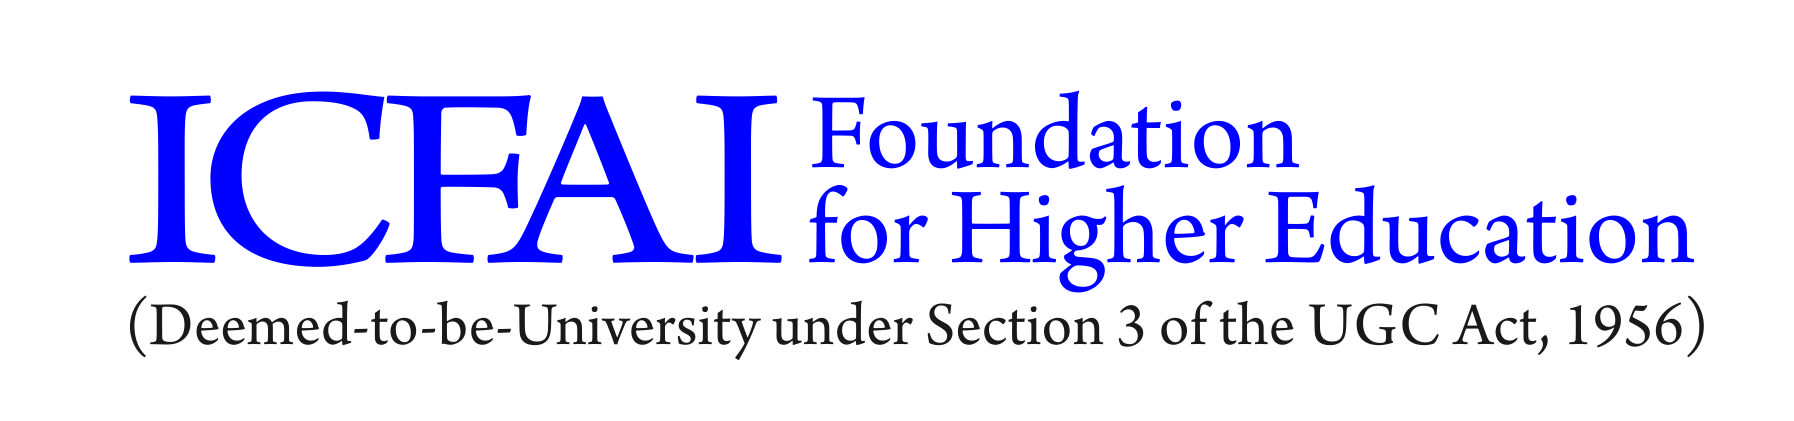 ICFAI Foundation for Higher Education (IFHE)